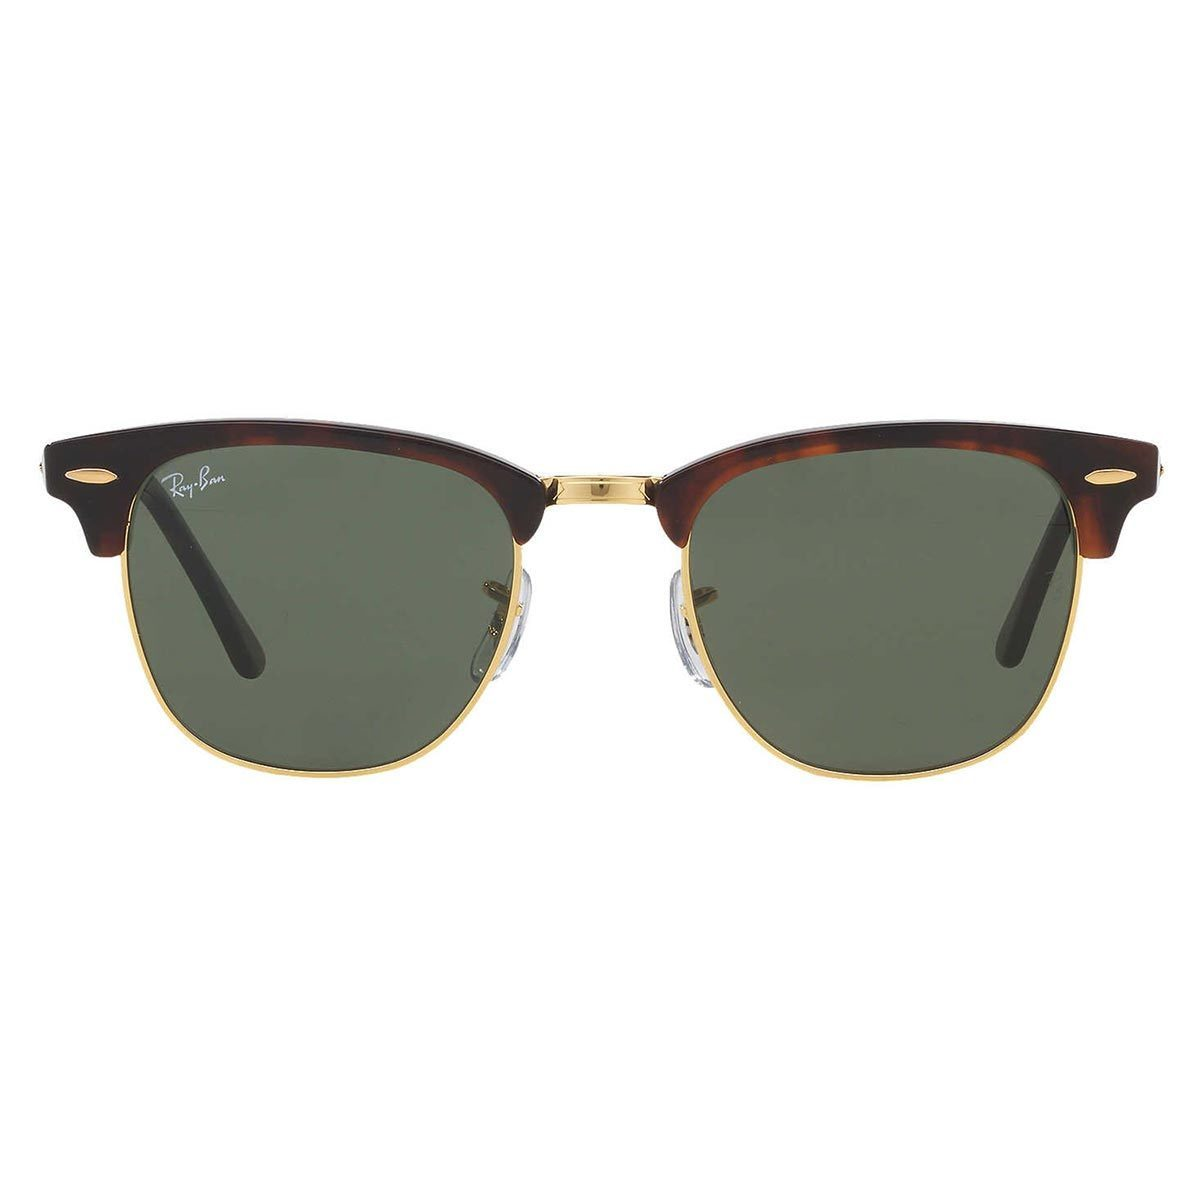 f5b390a2353 Shop Ray-Ban Clubmaster RB 3016 Unisex Tortoise Frame Green Classic Lens  Sunglasses - Free Shipping Today - Overstock - 6852790